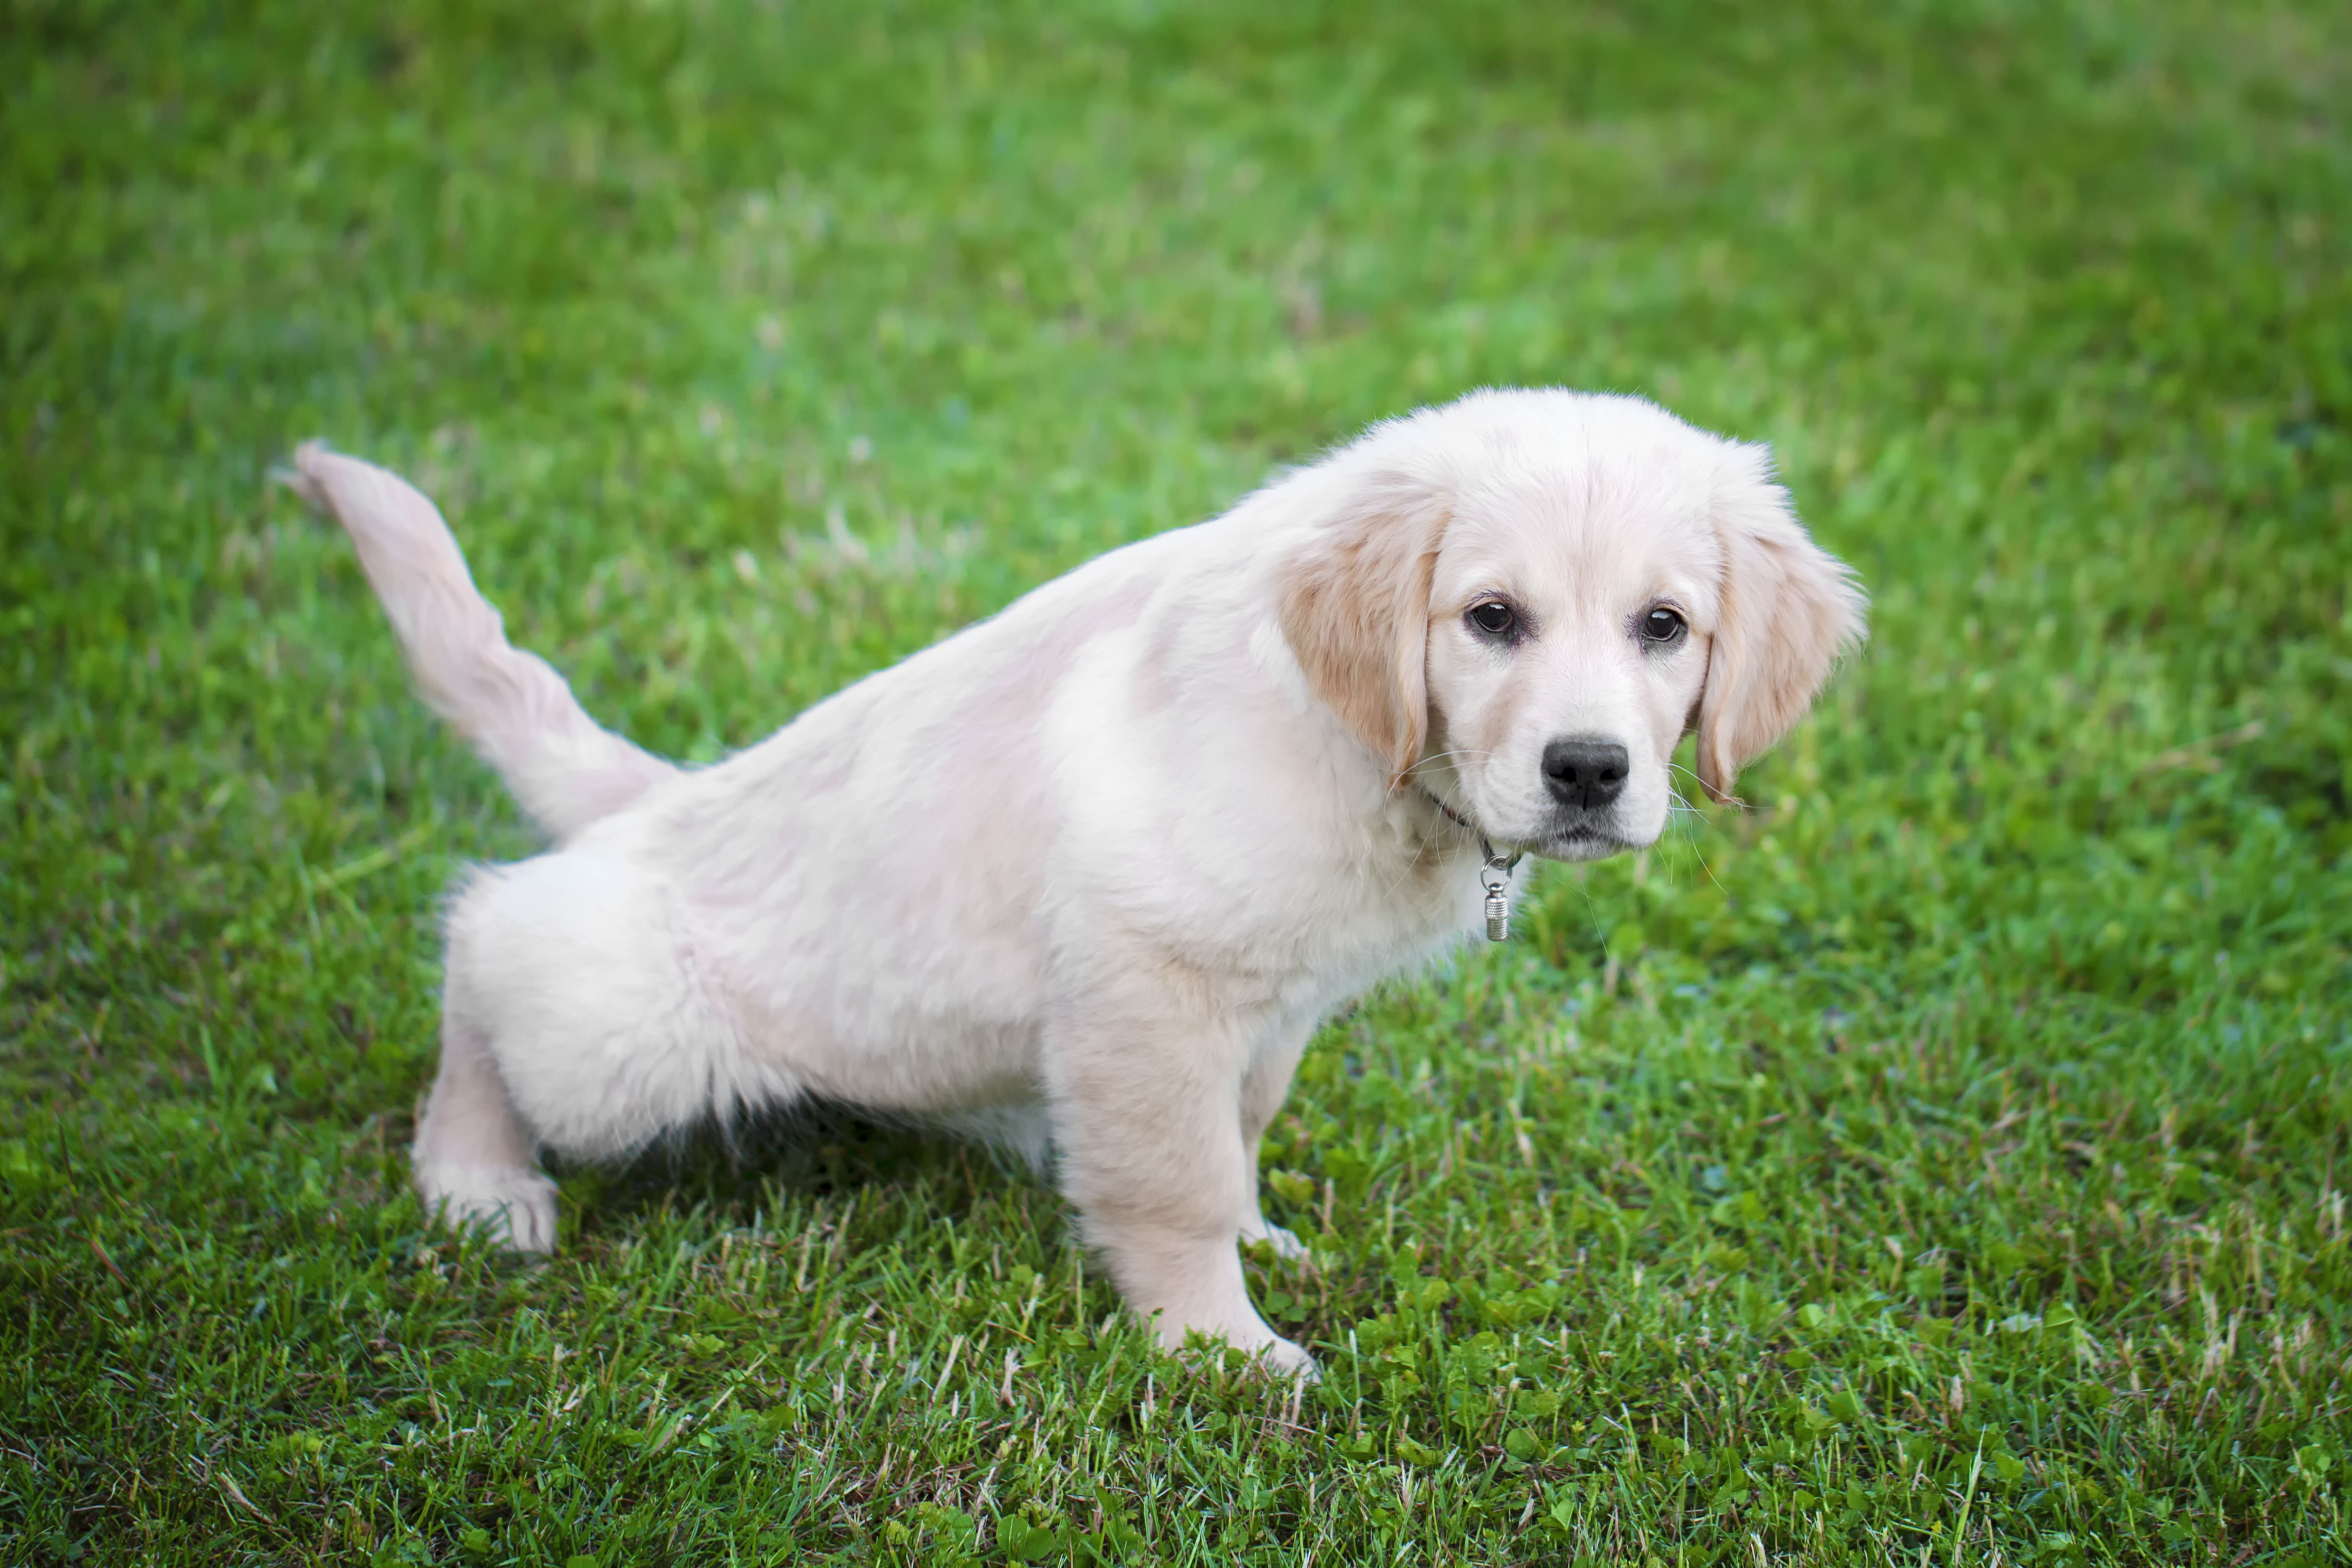 Consistent Schedule - How to Potty Train Your Dog